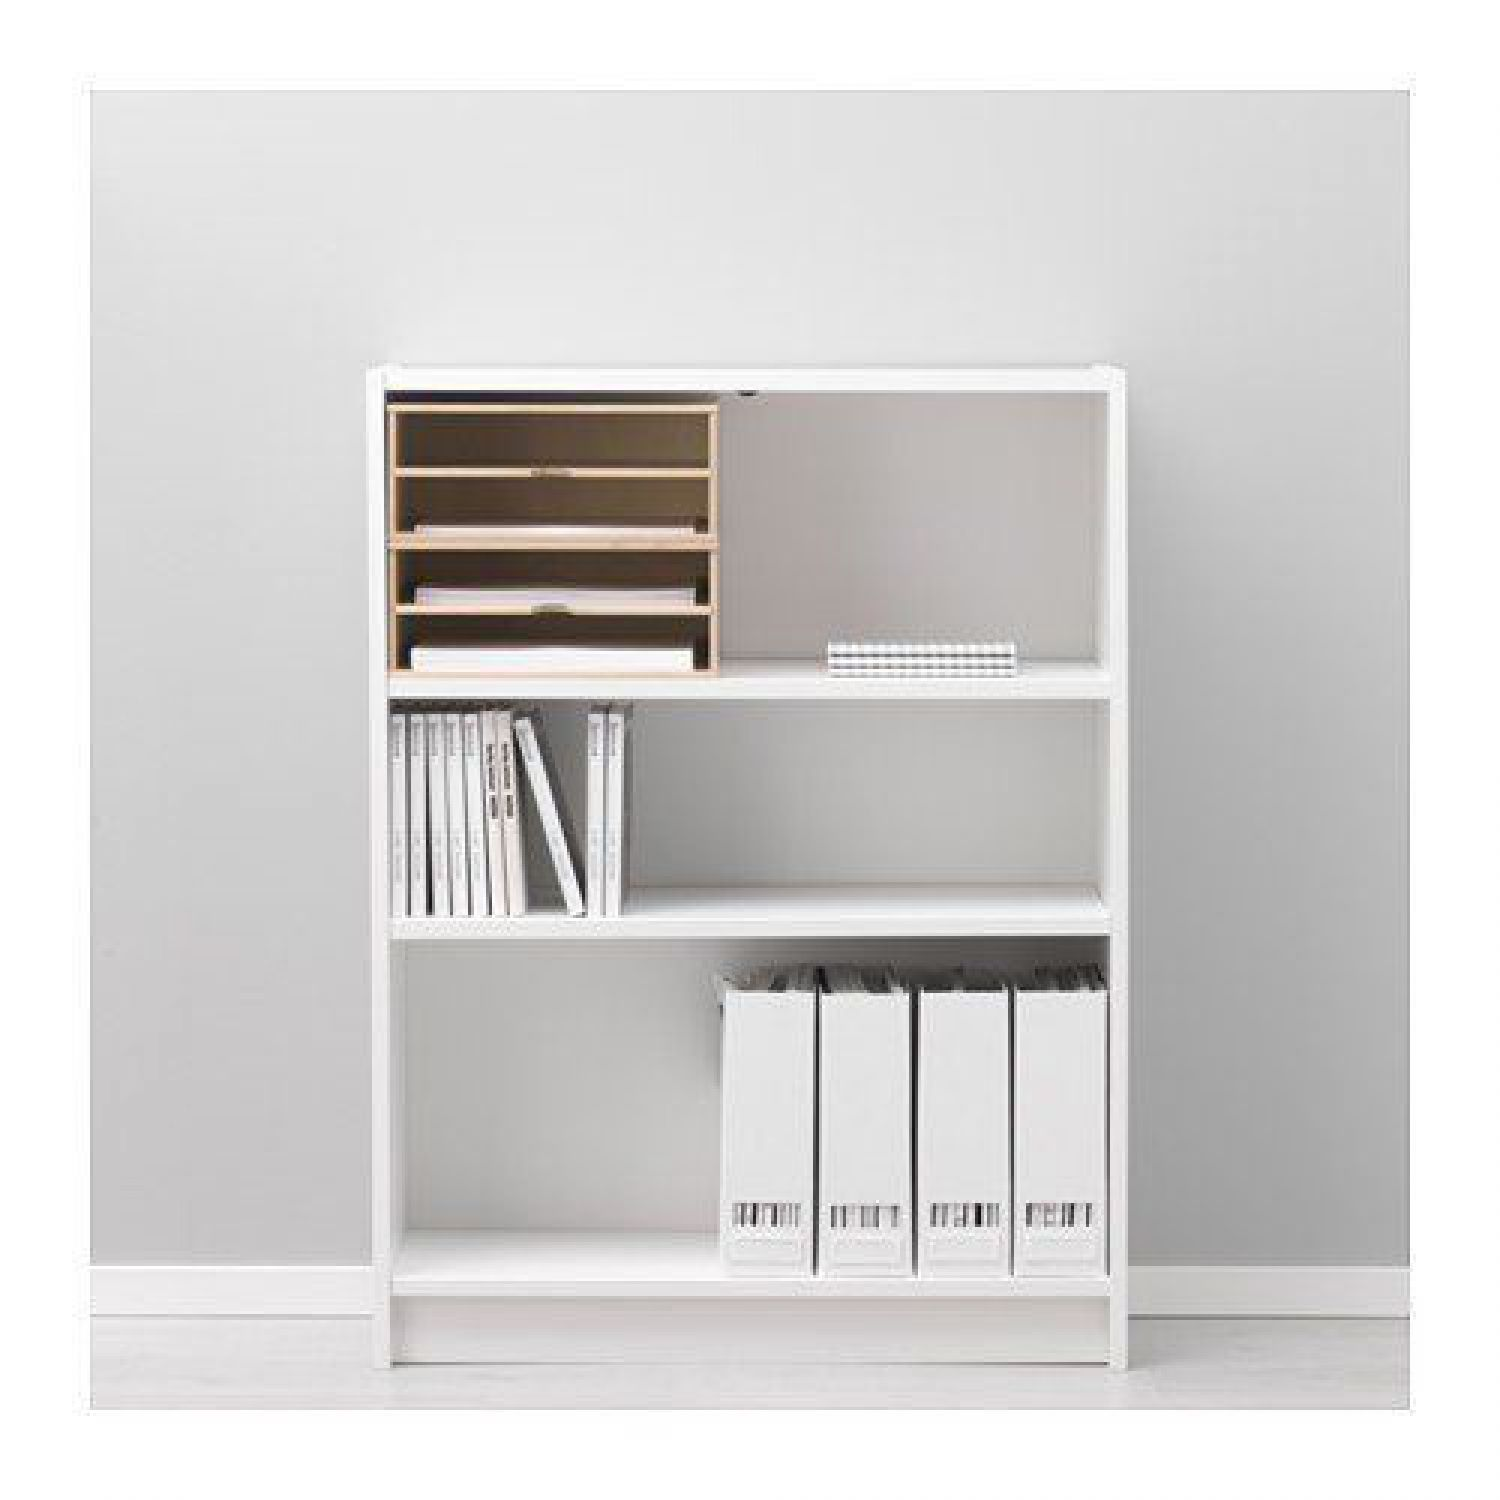 ikea f rh ja wandregal 30x30 cm wei handtuchregal badschrank wandschrank. Black Bedroom Furniture Sets. Home Design Ideas